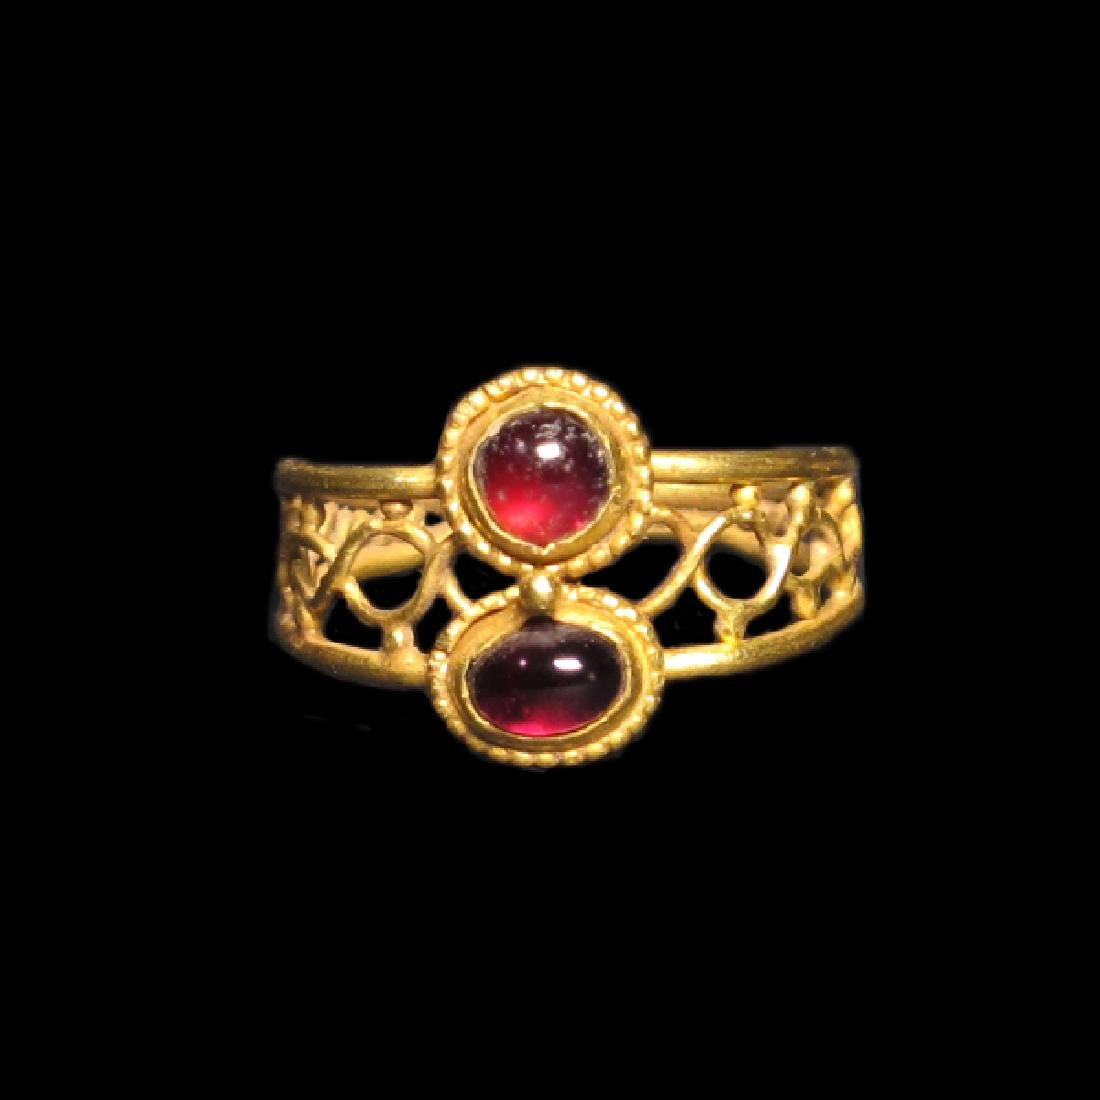 Roman Gold and Garnet Ring, c. 2nd-3rd Century A.D.